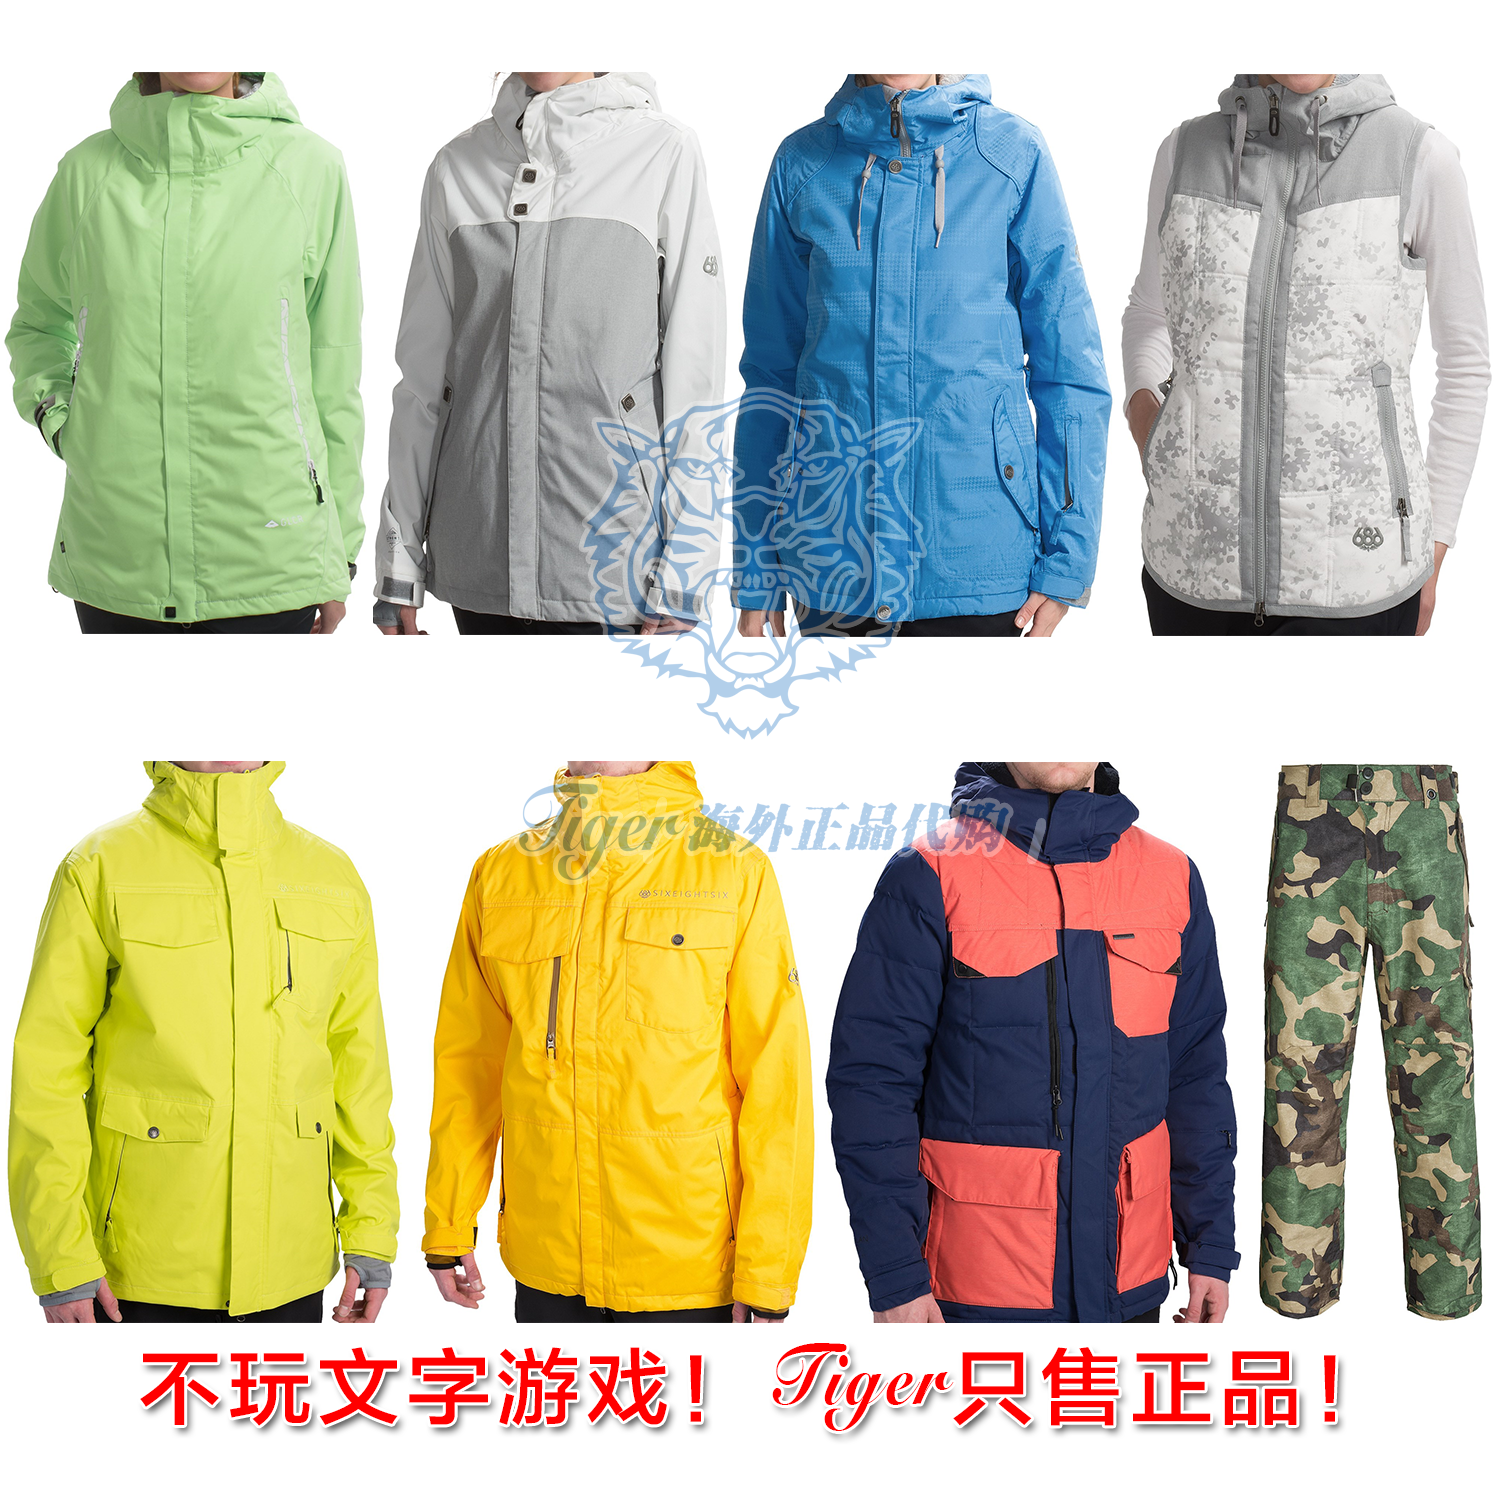 American Purchase of 686 Specialized White Camouflage Outdoor Snowboarding Wear Trousers and vest for Men and Women